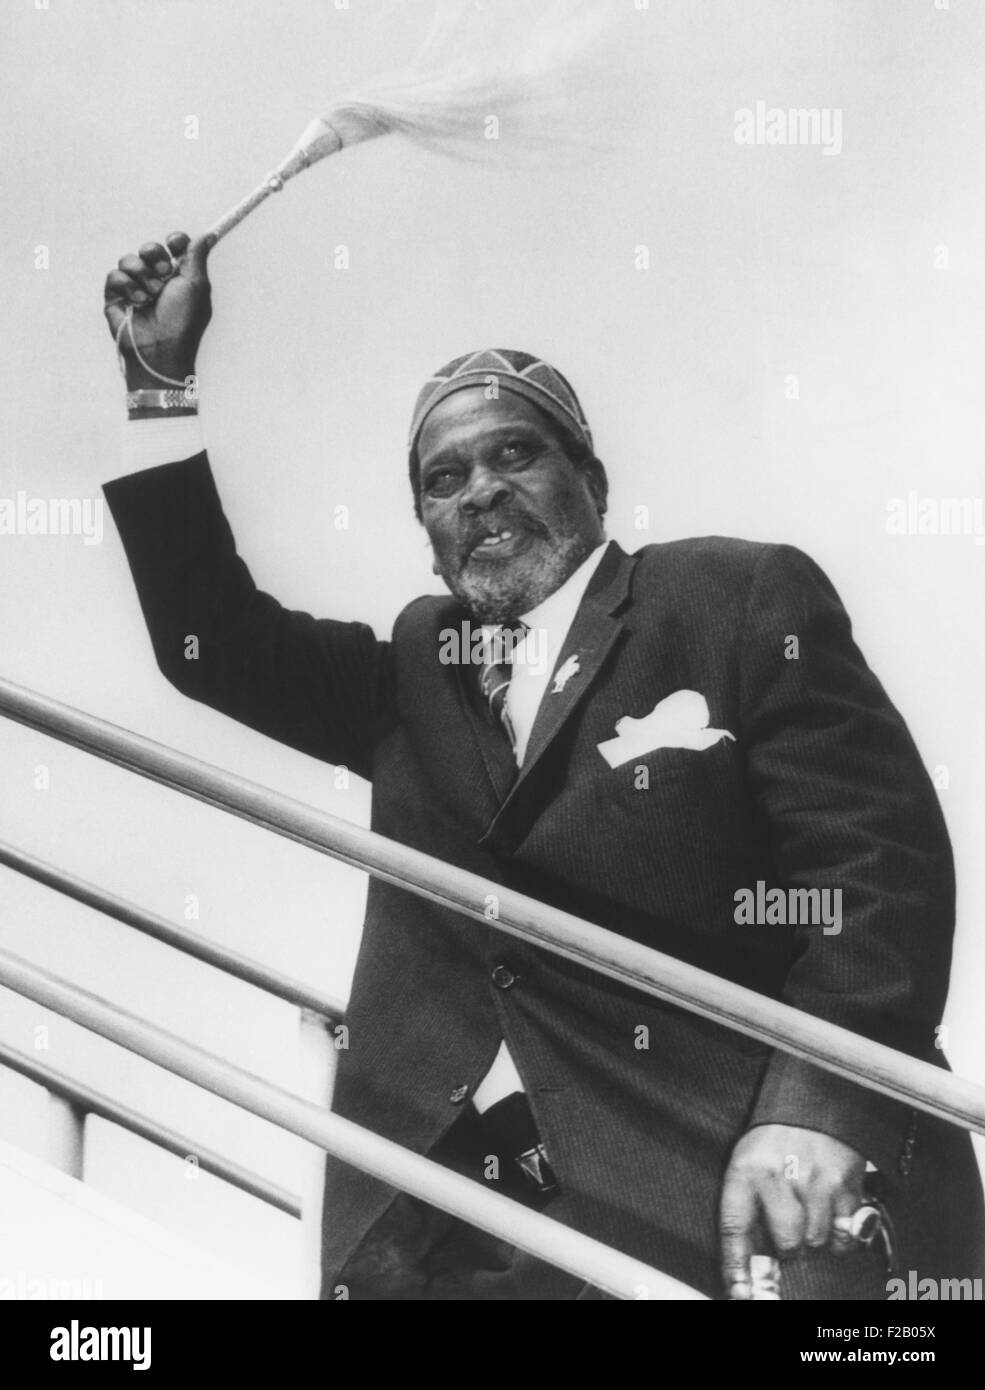 Jomo Kenyatta, President of Kenya, carried a fly-whisk, a mark of authority in Maasai society. During his rule, multi-ethnic Kenya moved toward one party rule, Kenya African National Union, and domination by his Kikuyu (Gikuyu) Tribe's elite. While it is the largest ethnic group in Kenya, it represented less than 25% of the population. (CSU_2015_9_688) Stock Photo